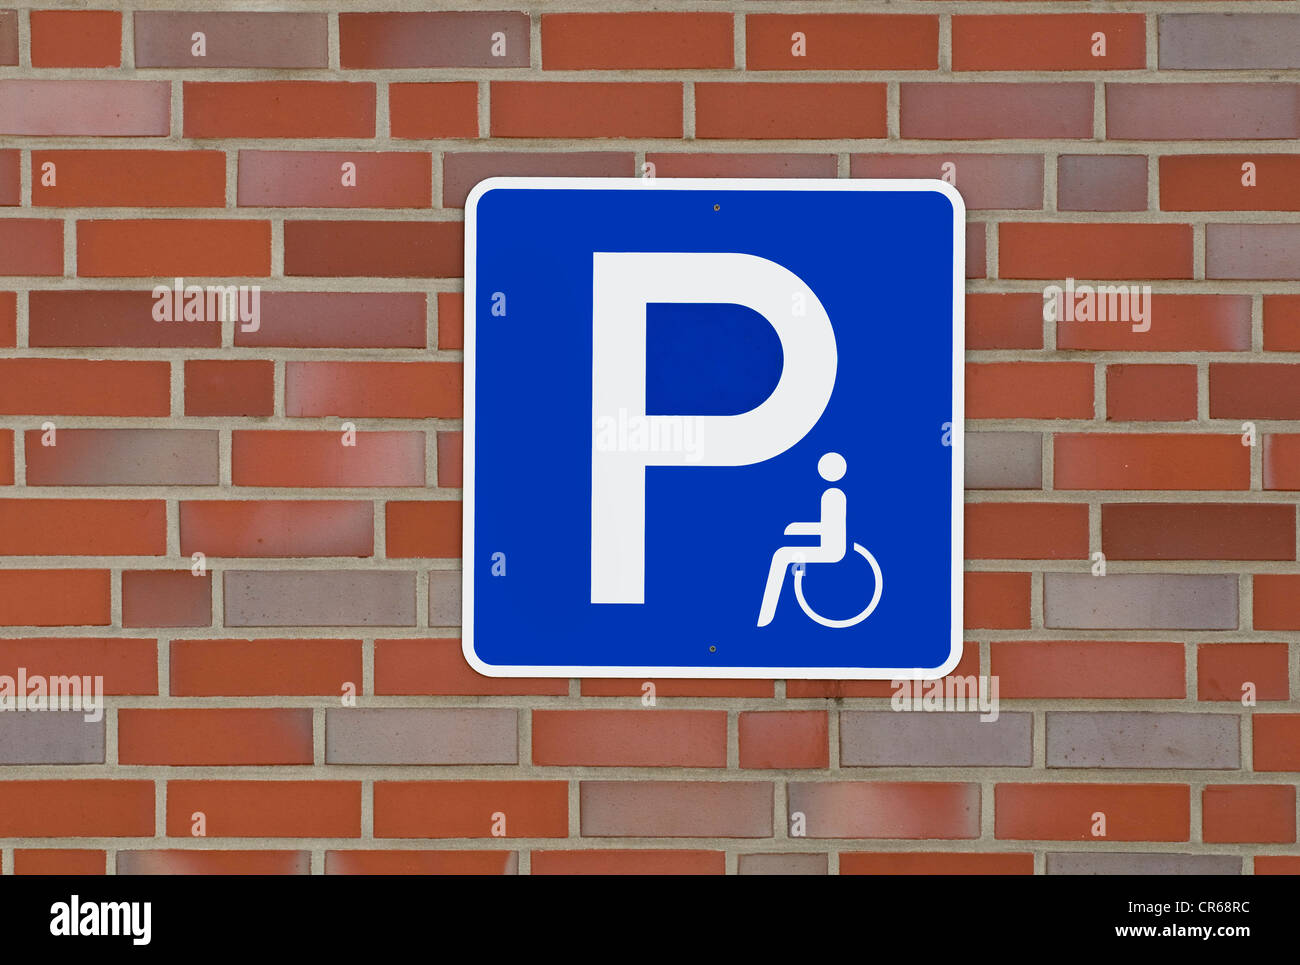 Sign with pictogram on brick wall: disabled parking - Stock Image